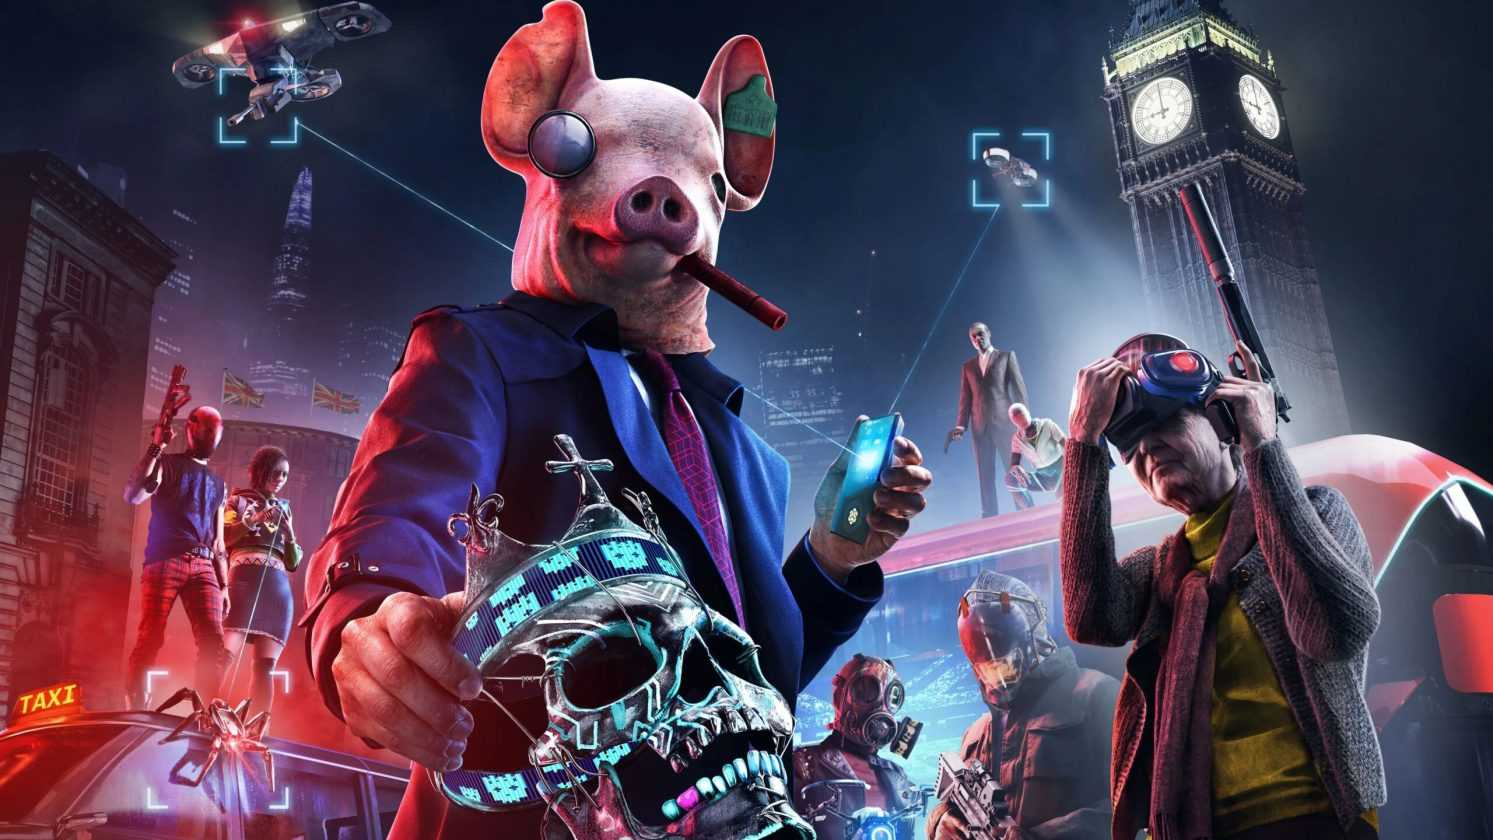 Watch Dogs: Legion Comment Prendre Des Photos